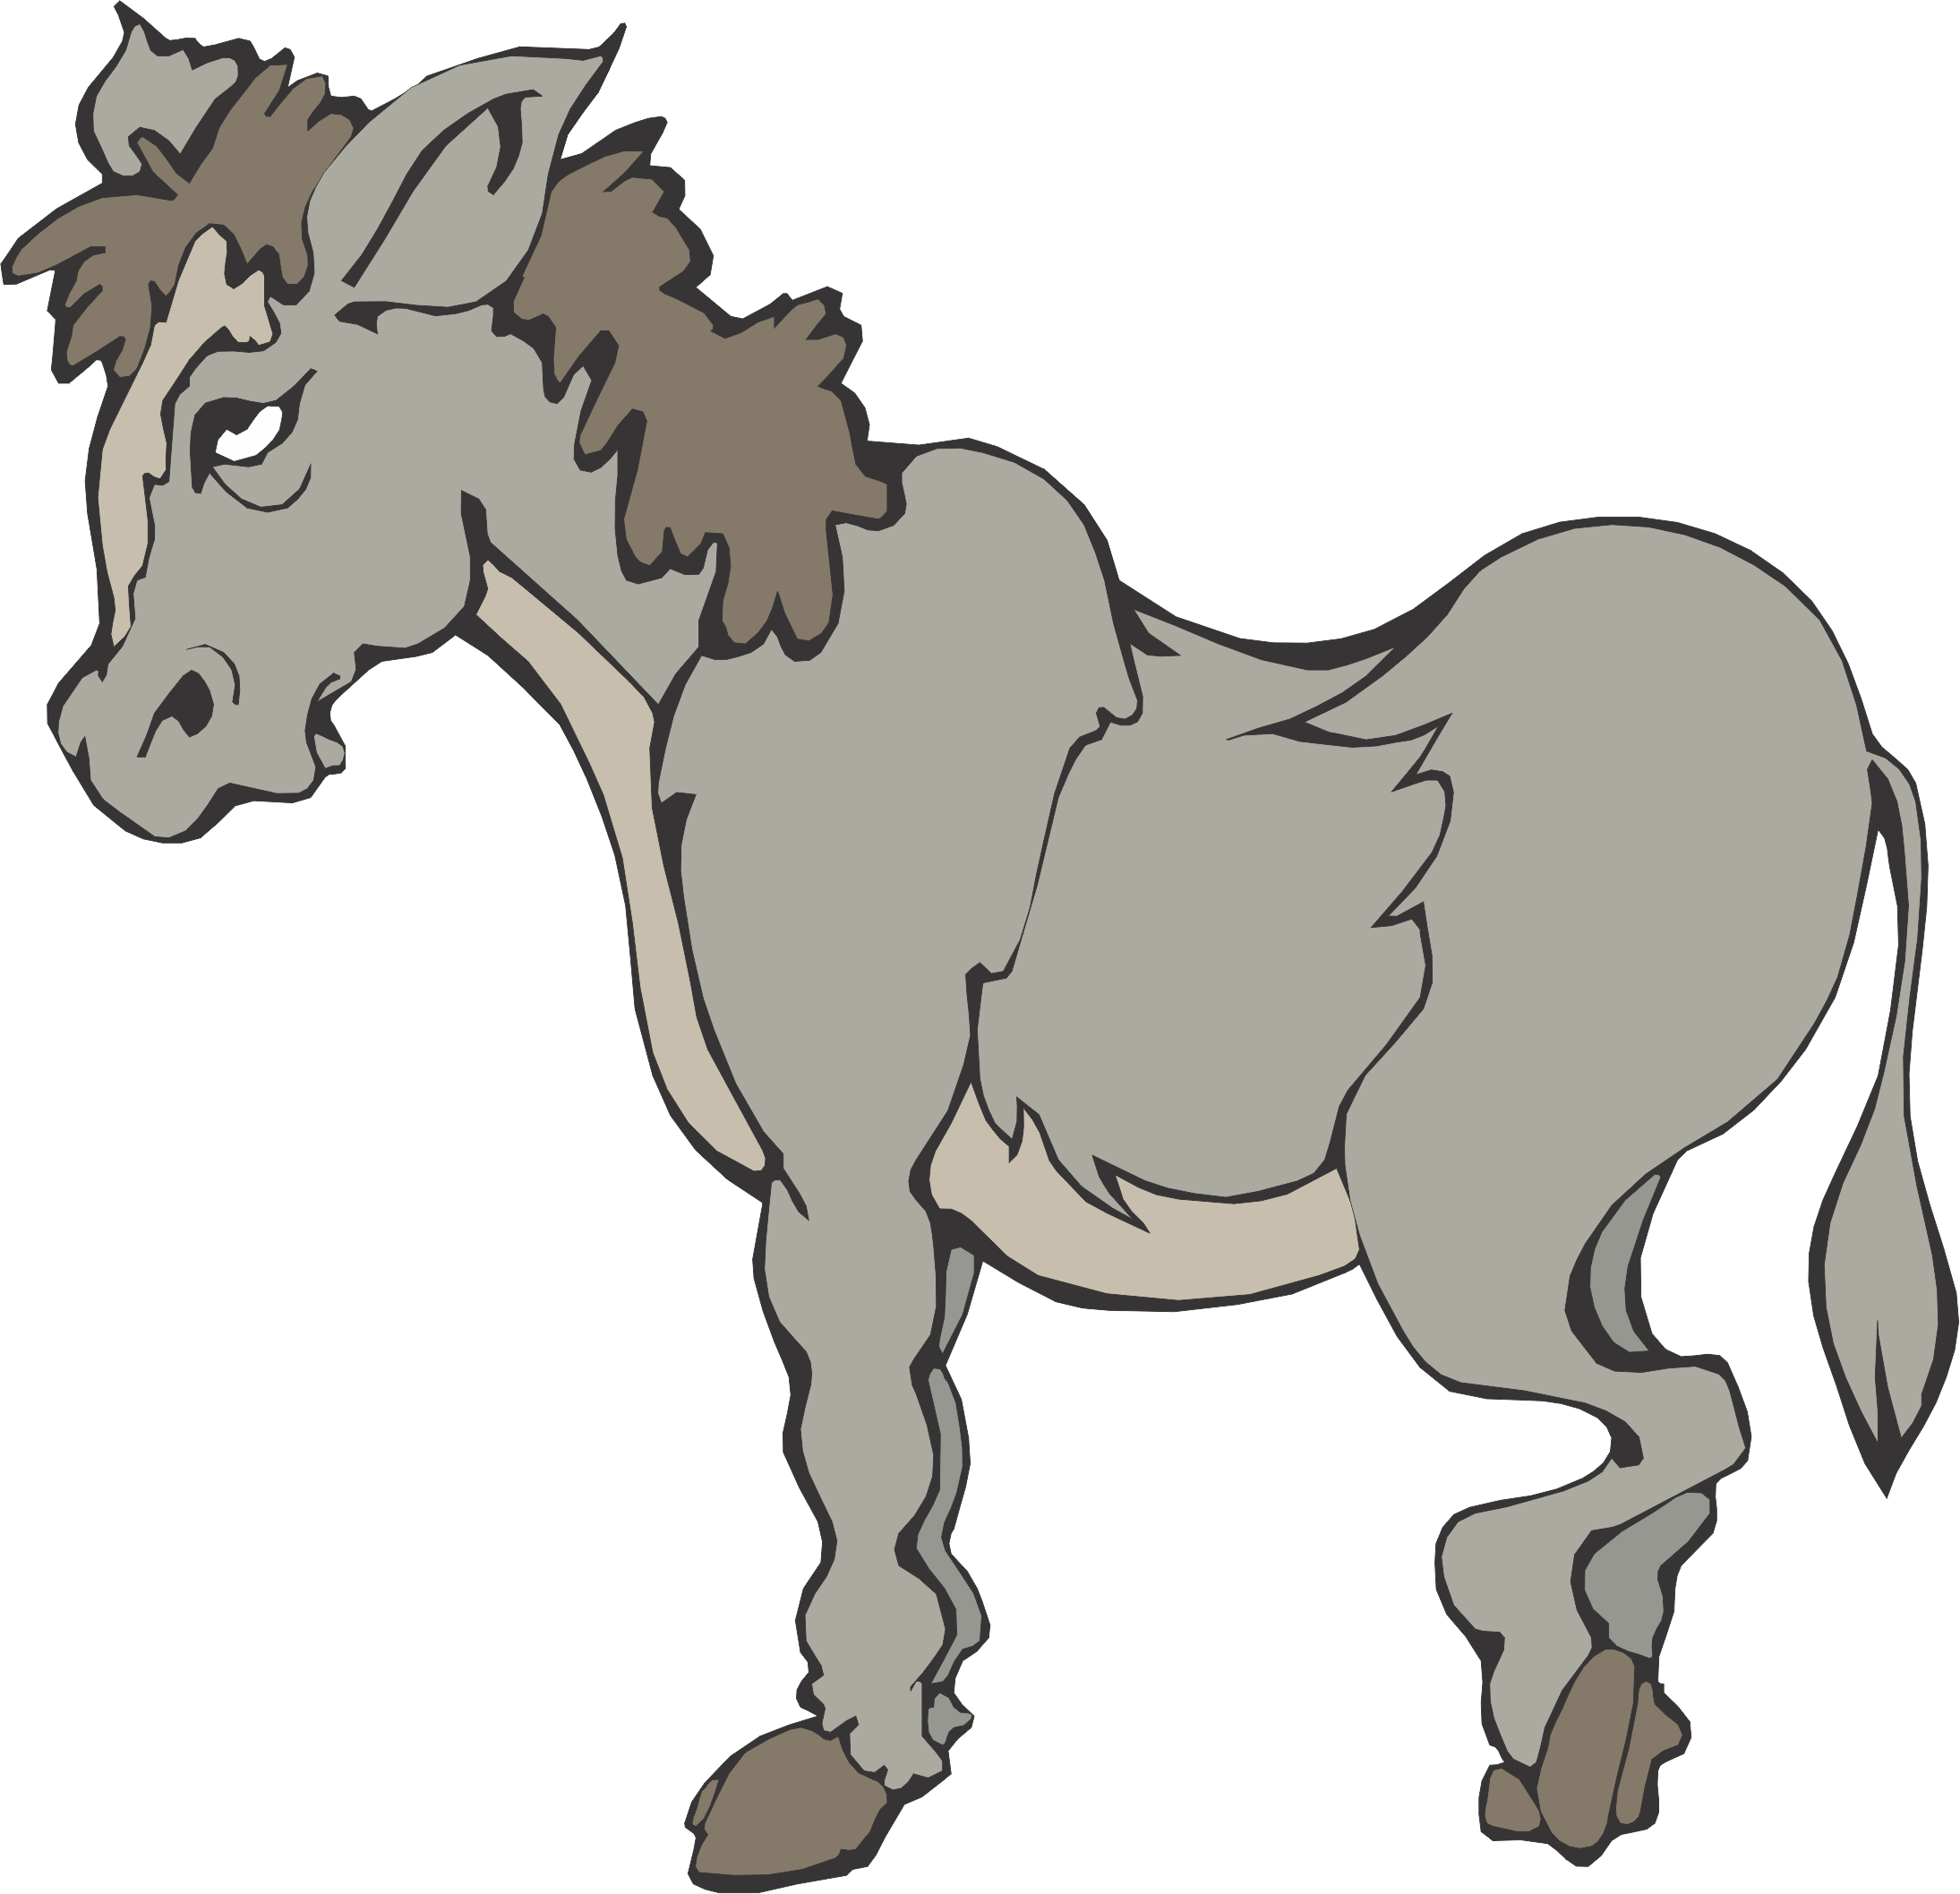 Angry Cartoon Horse Tattoo Design